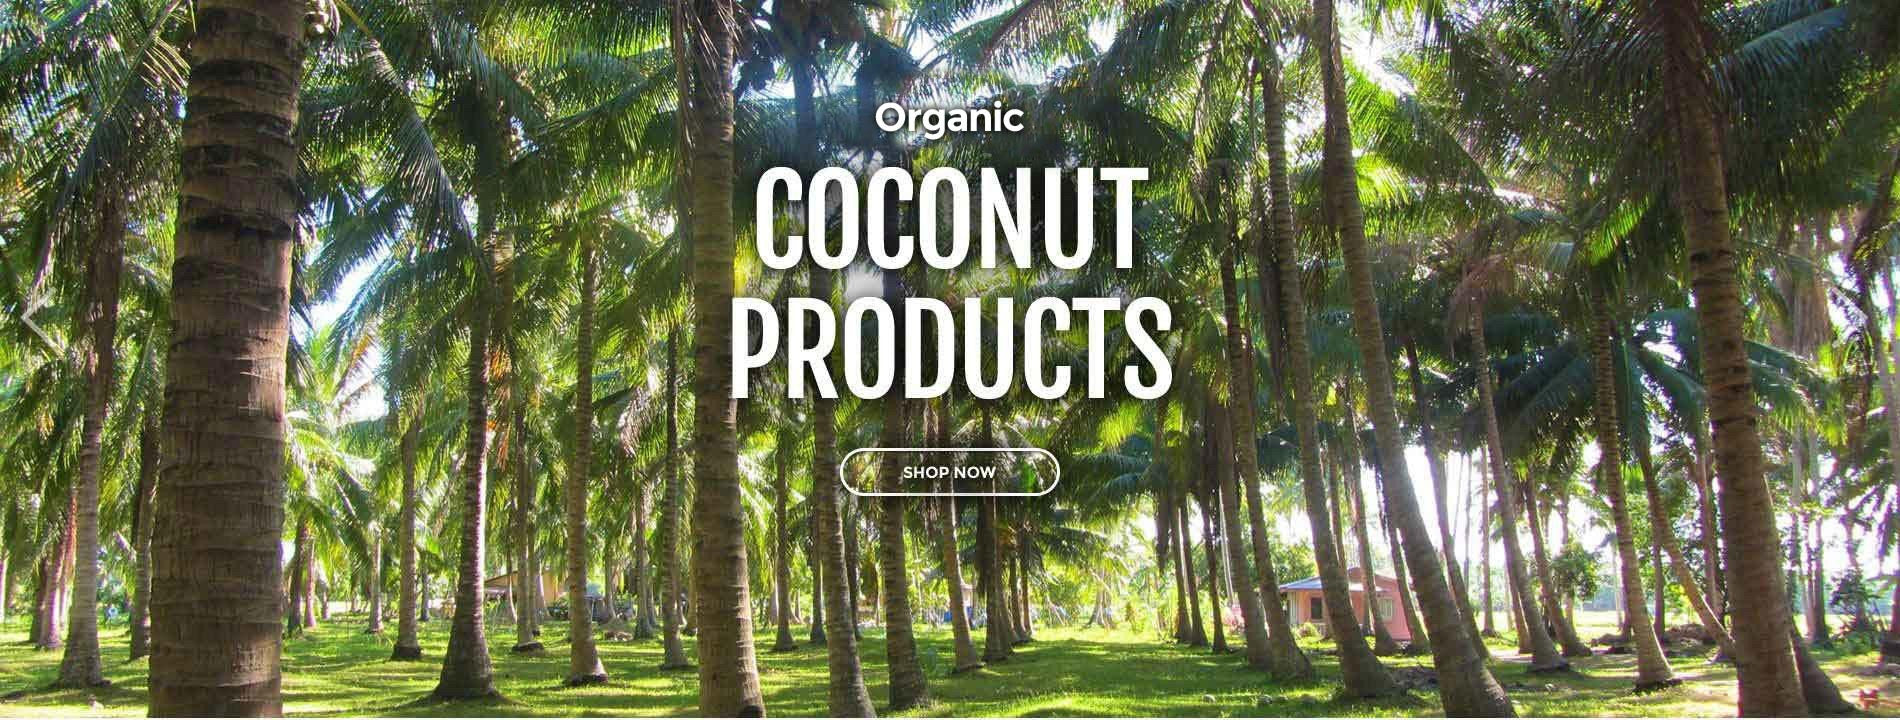 Organic Coconut Products